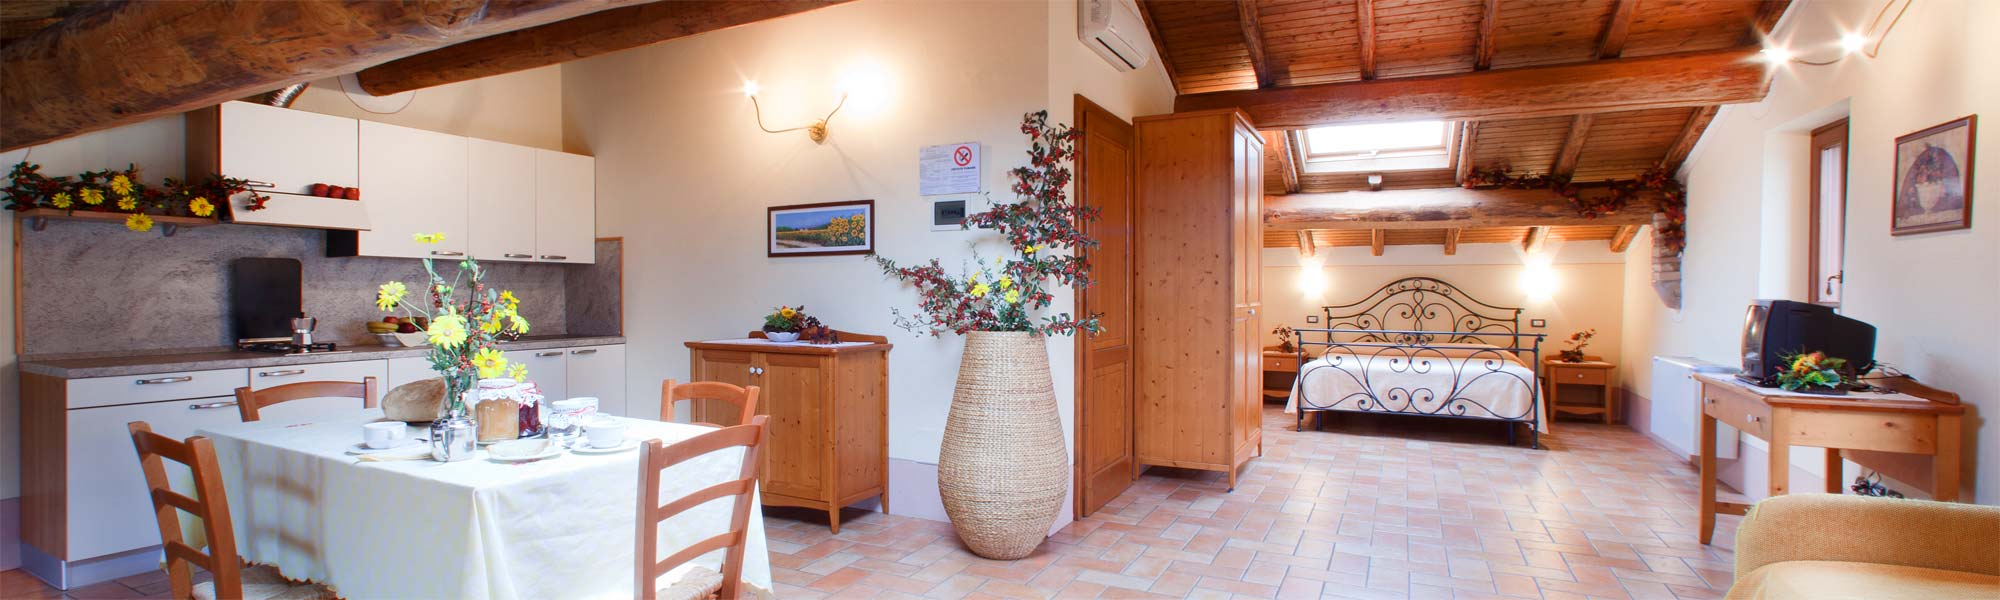 Room Farm Holiday Peschiera del Garda